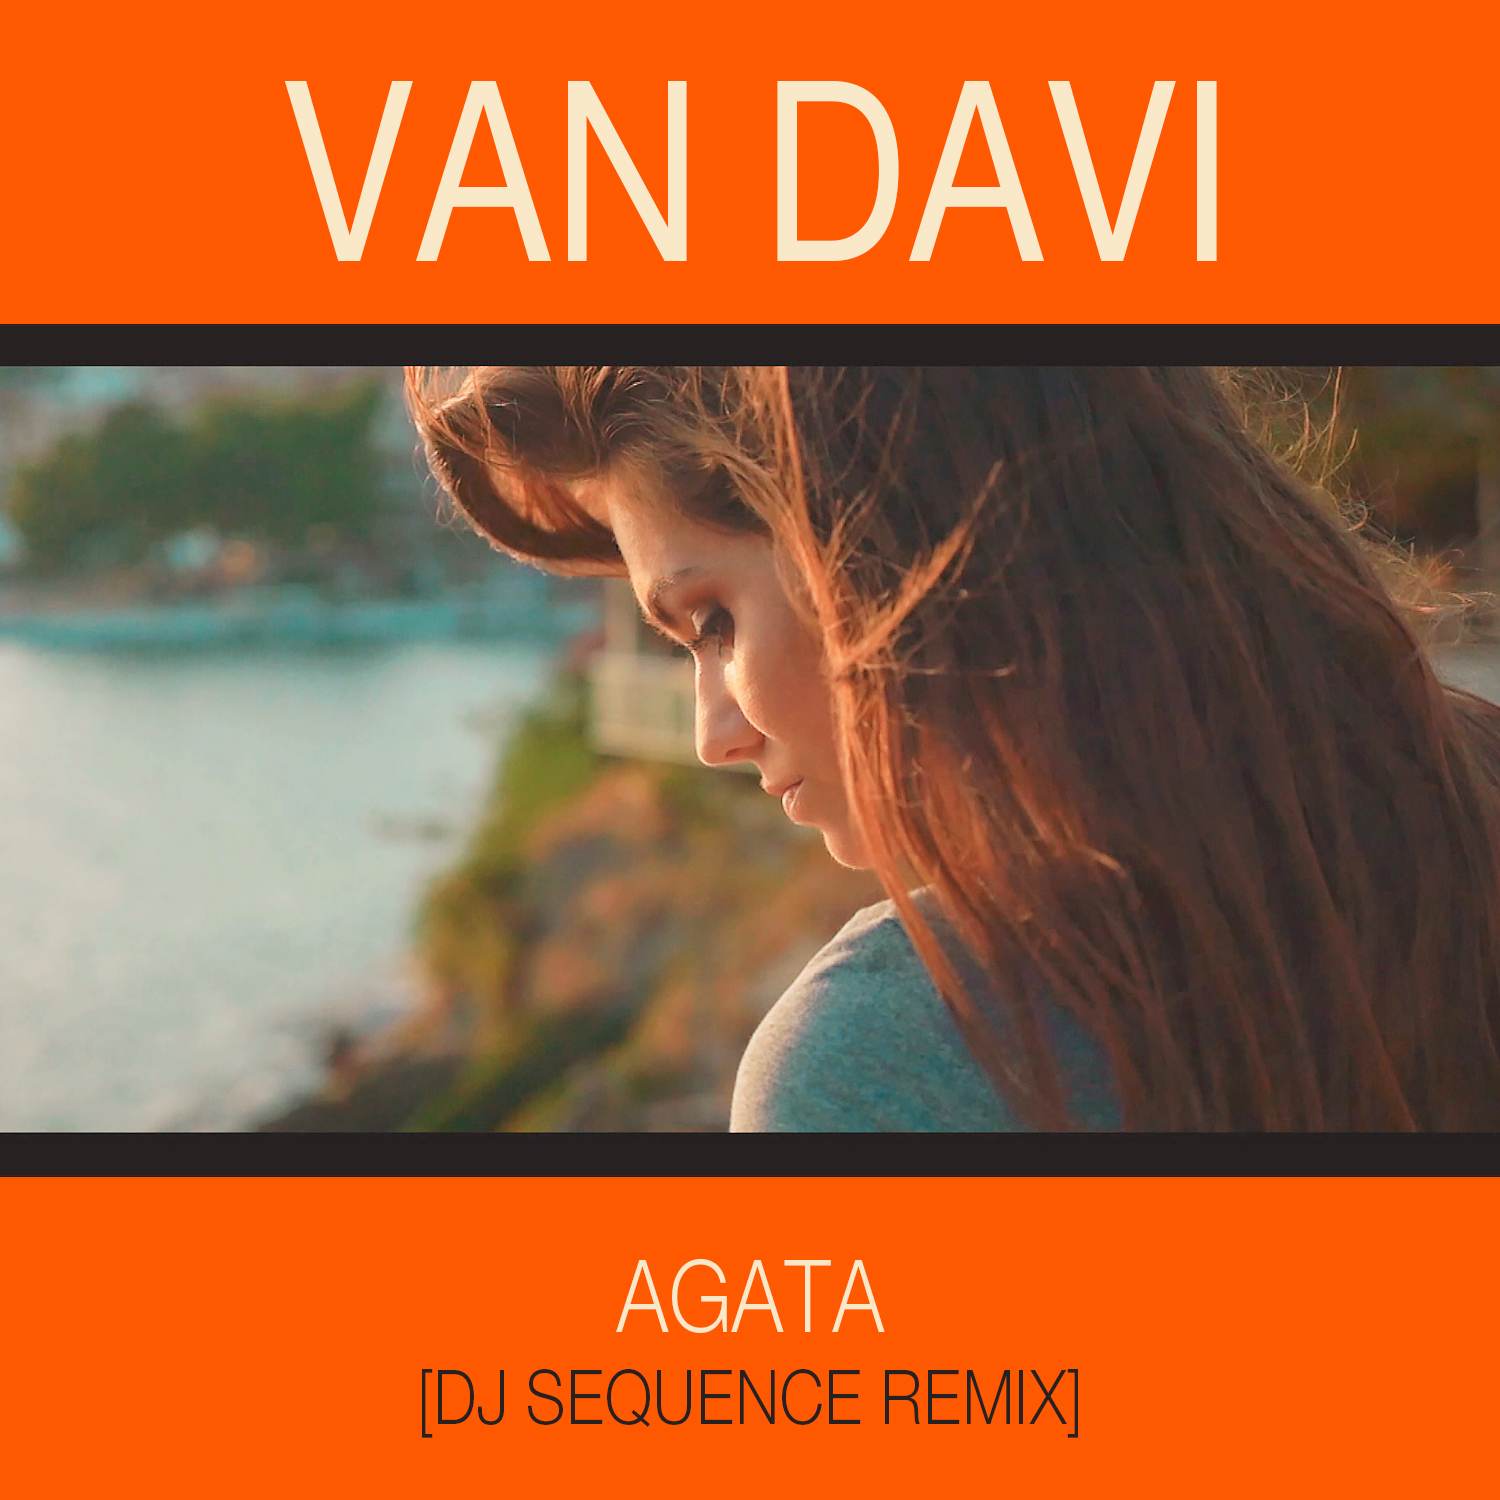 Van Davi - Agata (DJ Sequence Remix)